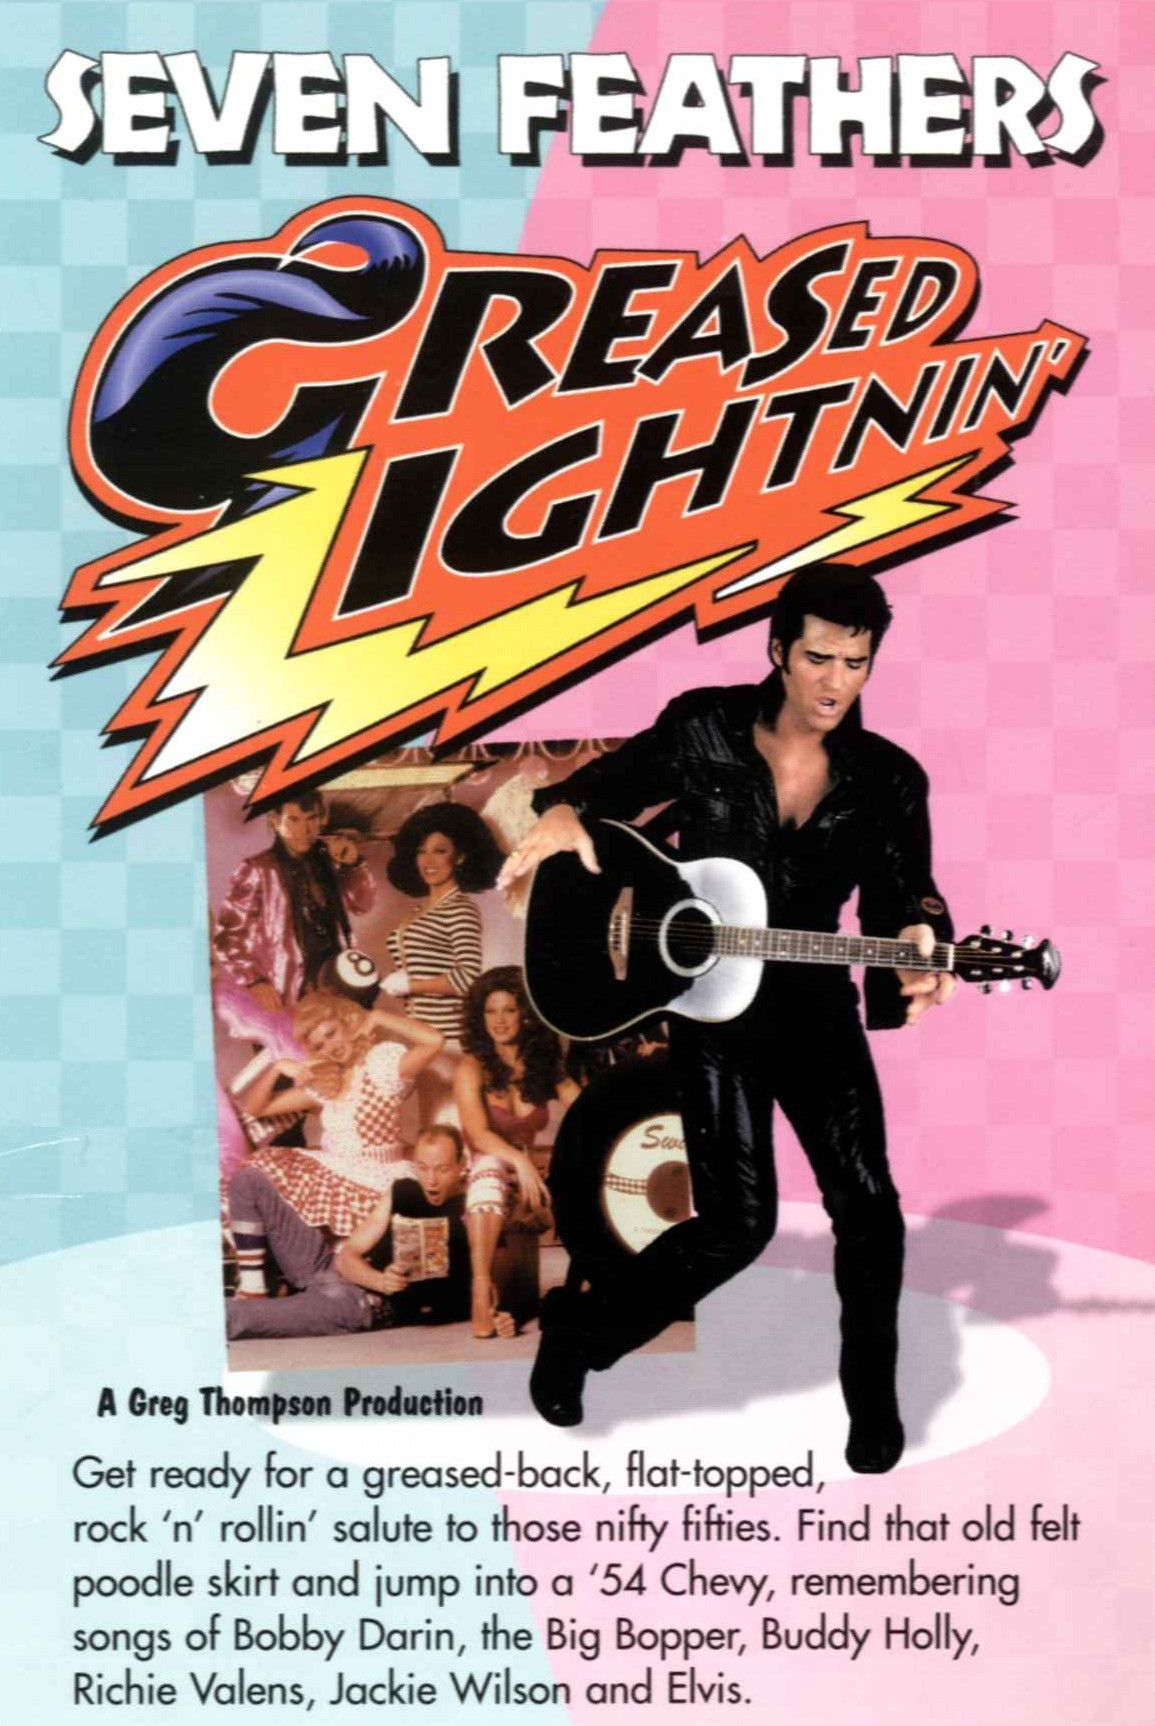 Greased Lightnin